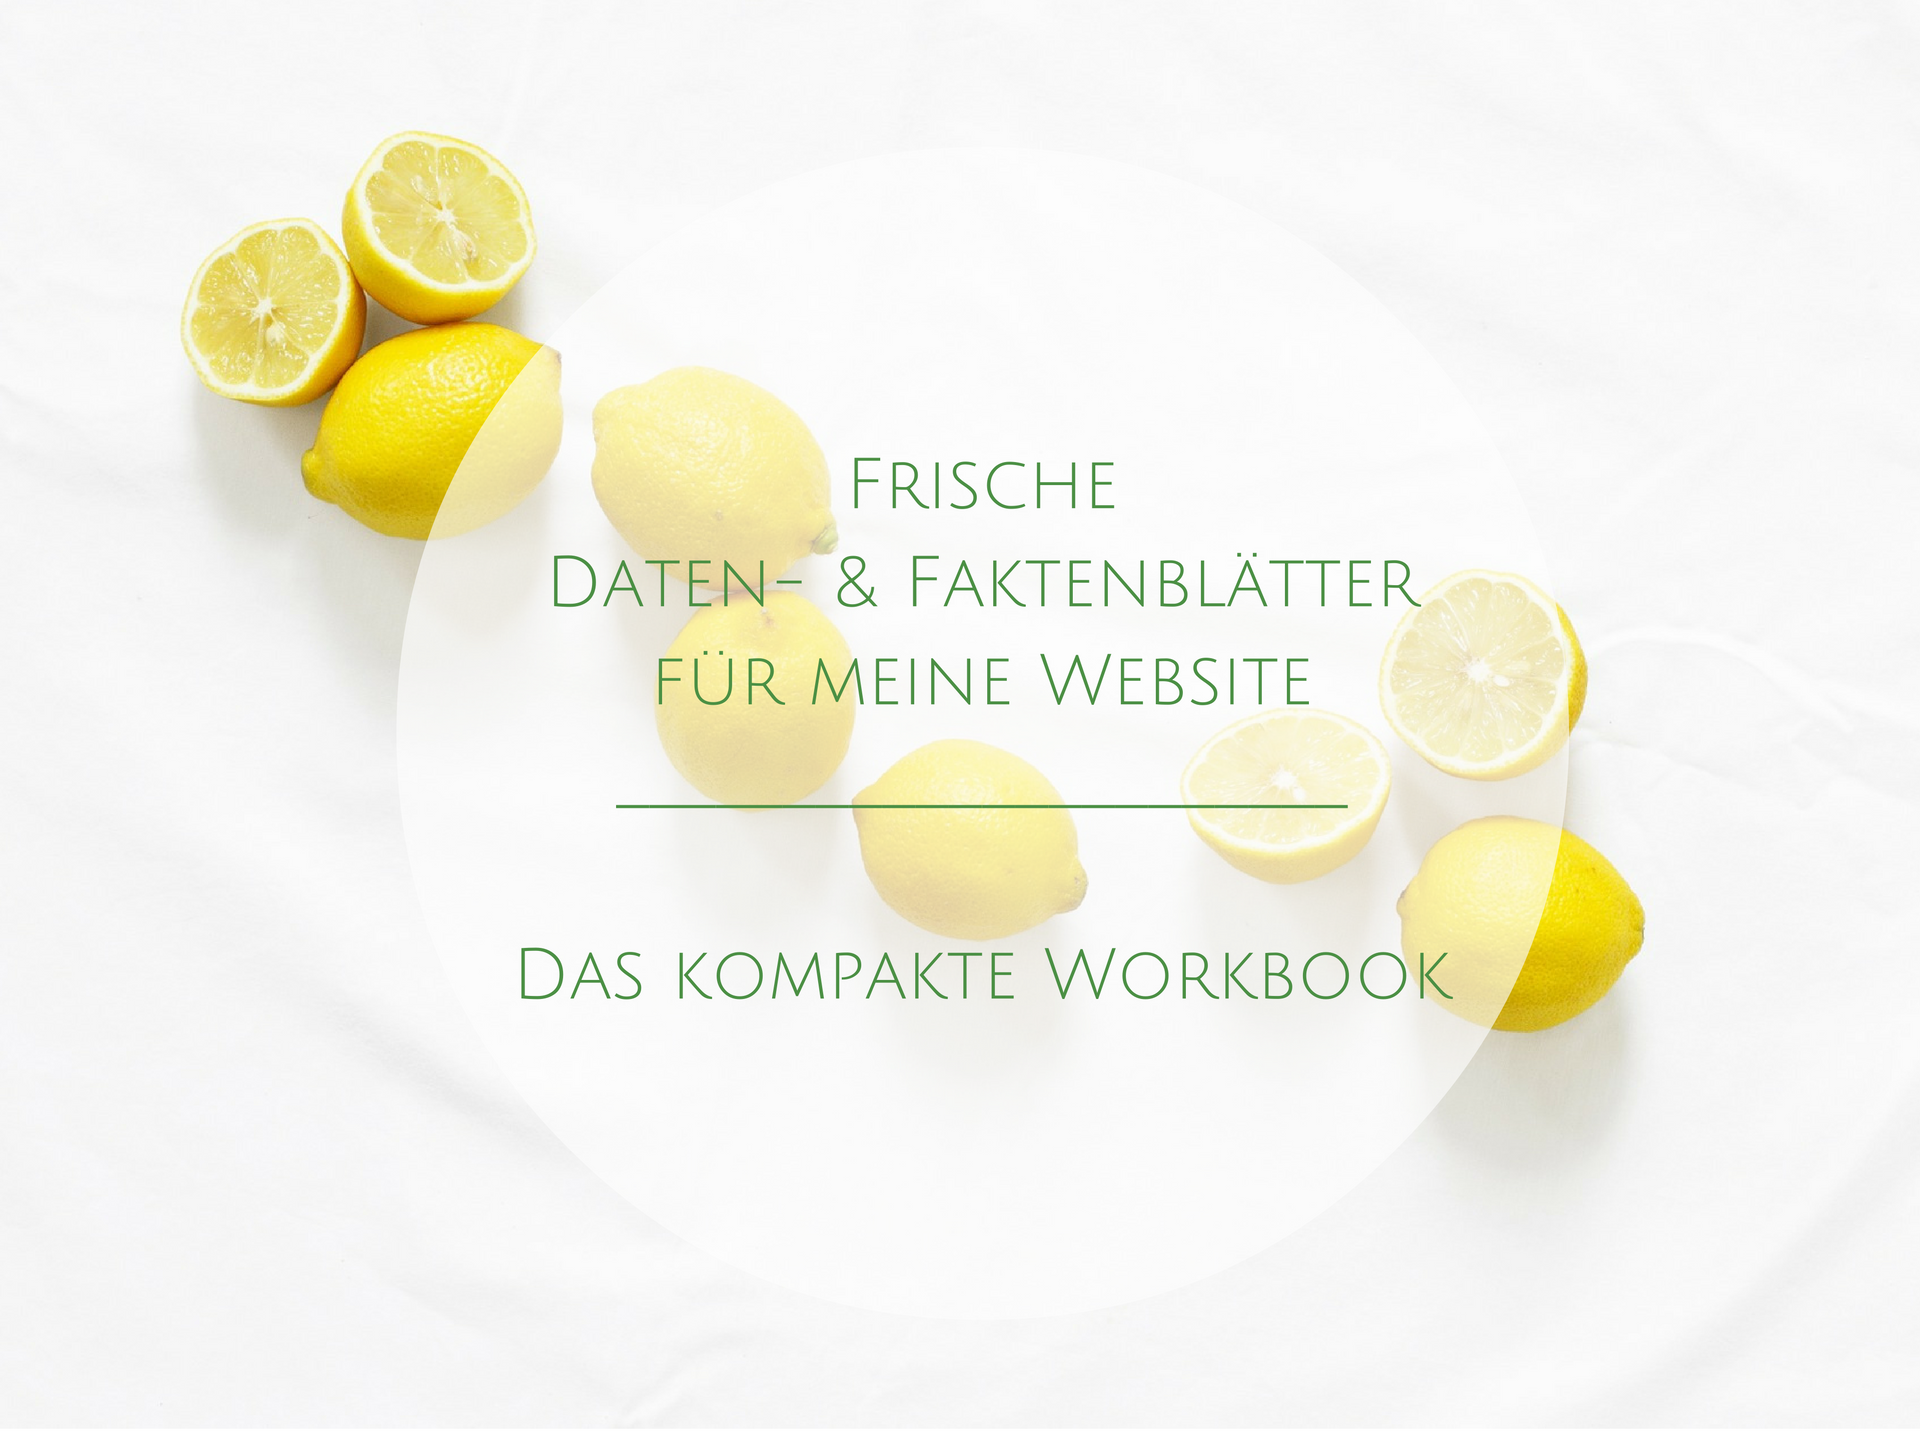 Ihr Workbook zum Download